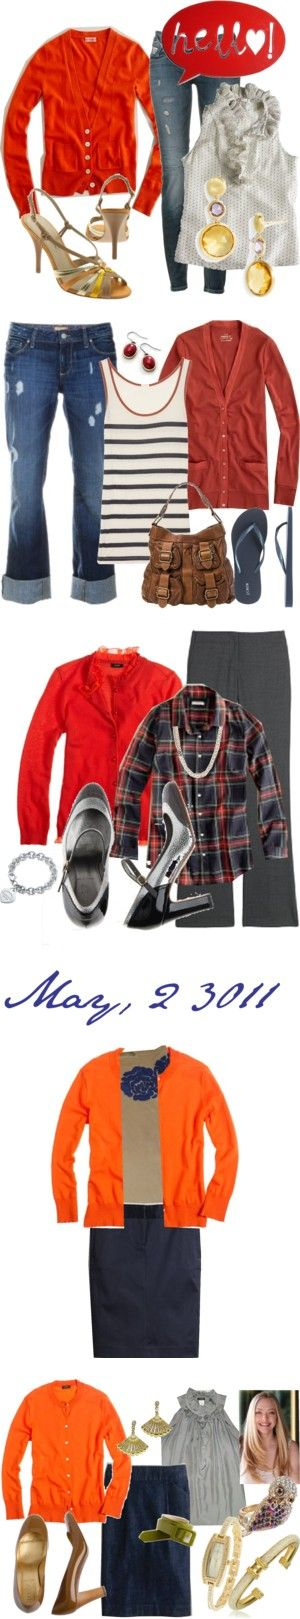 orange cardigan by cathyfred on Polyvore featuring мода, J.Crew, G-Star Raw, Via Spiga, Marco Bicego, Paige Denim, Banana Republic, pencil skirt, orange and Forever 21